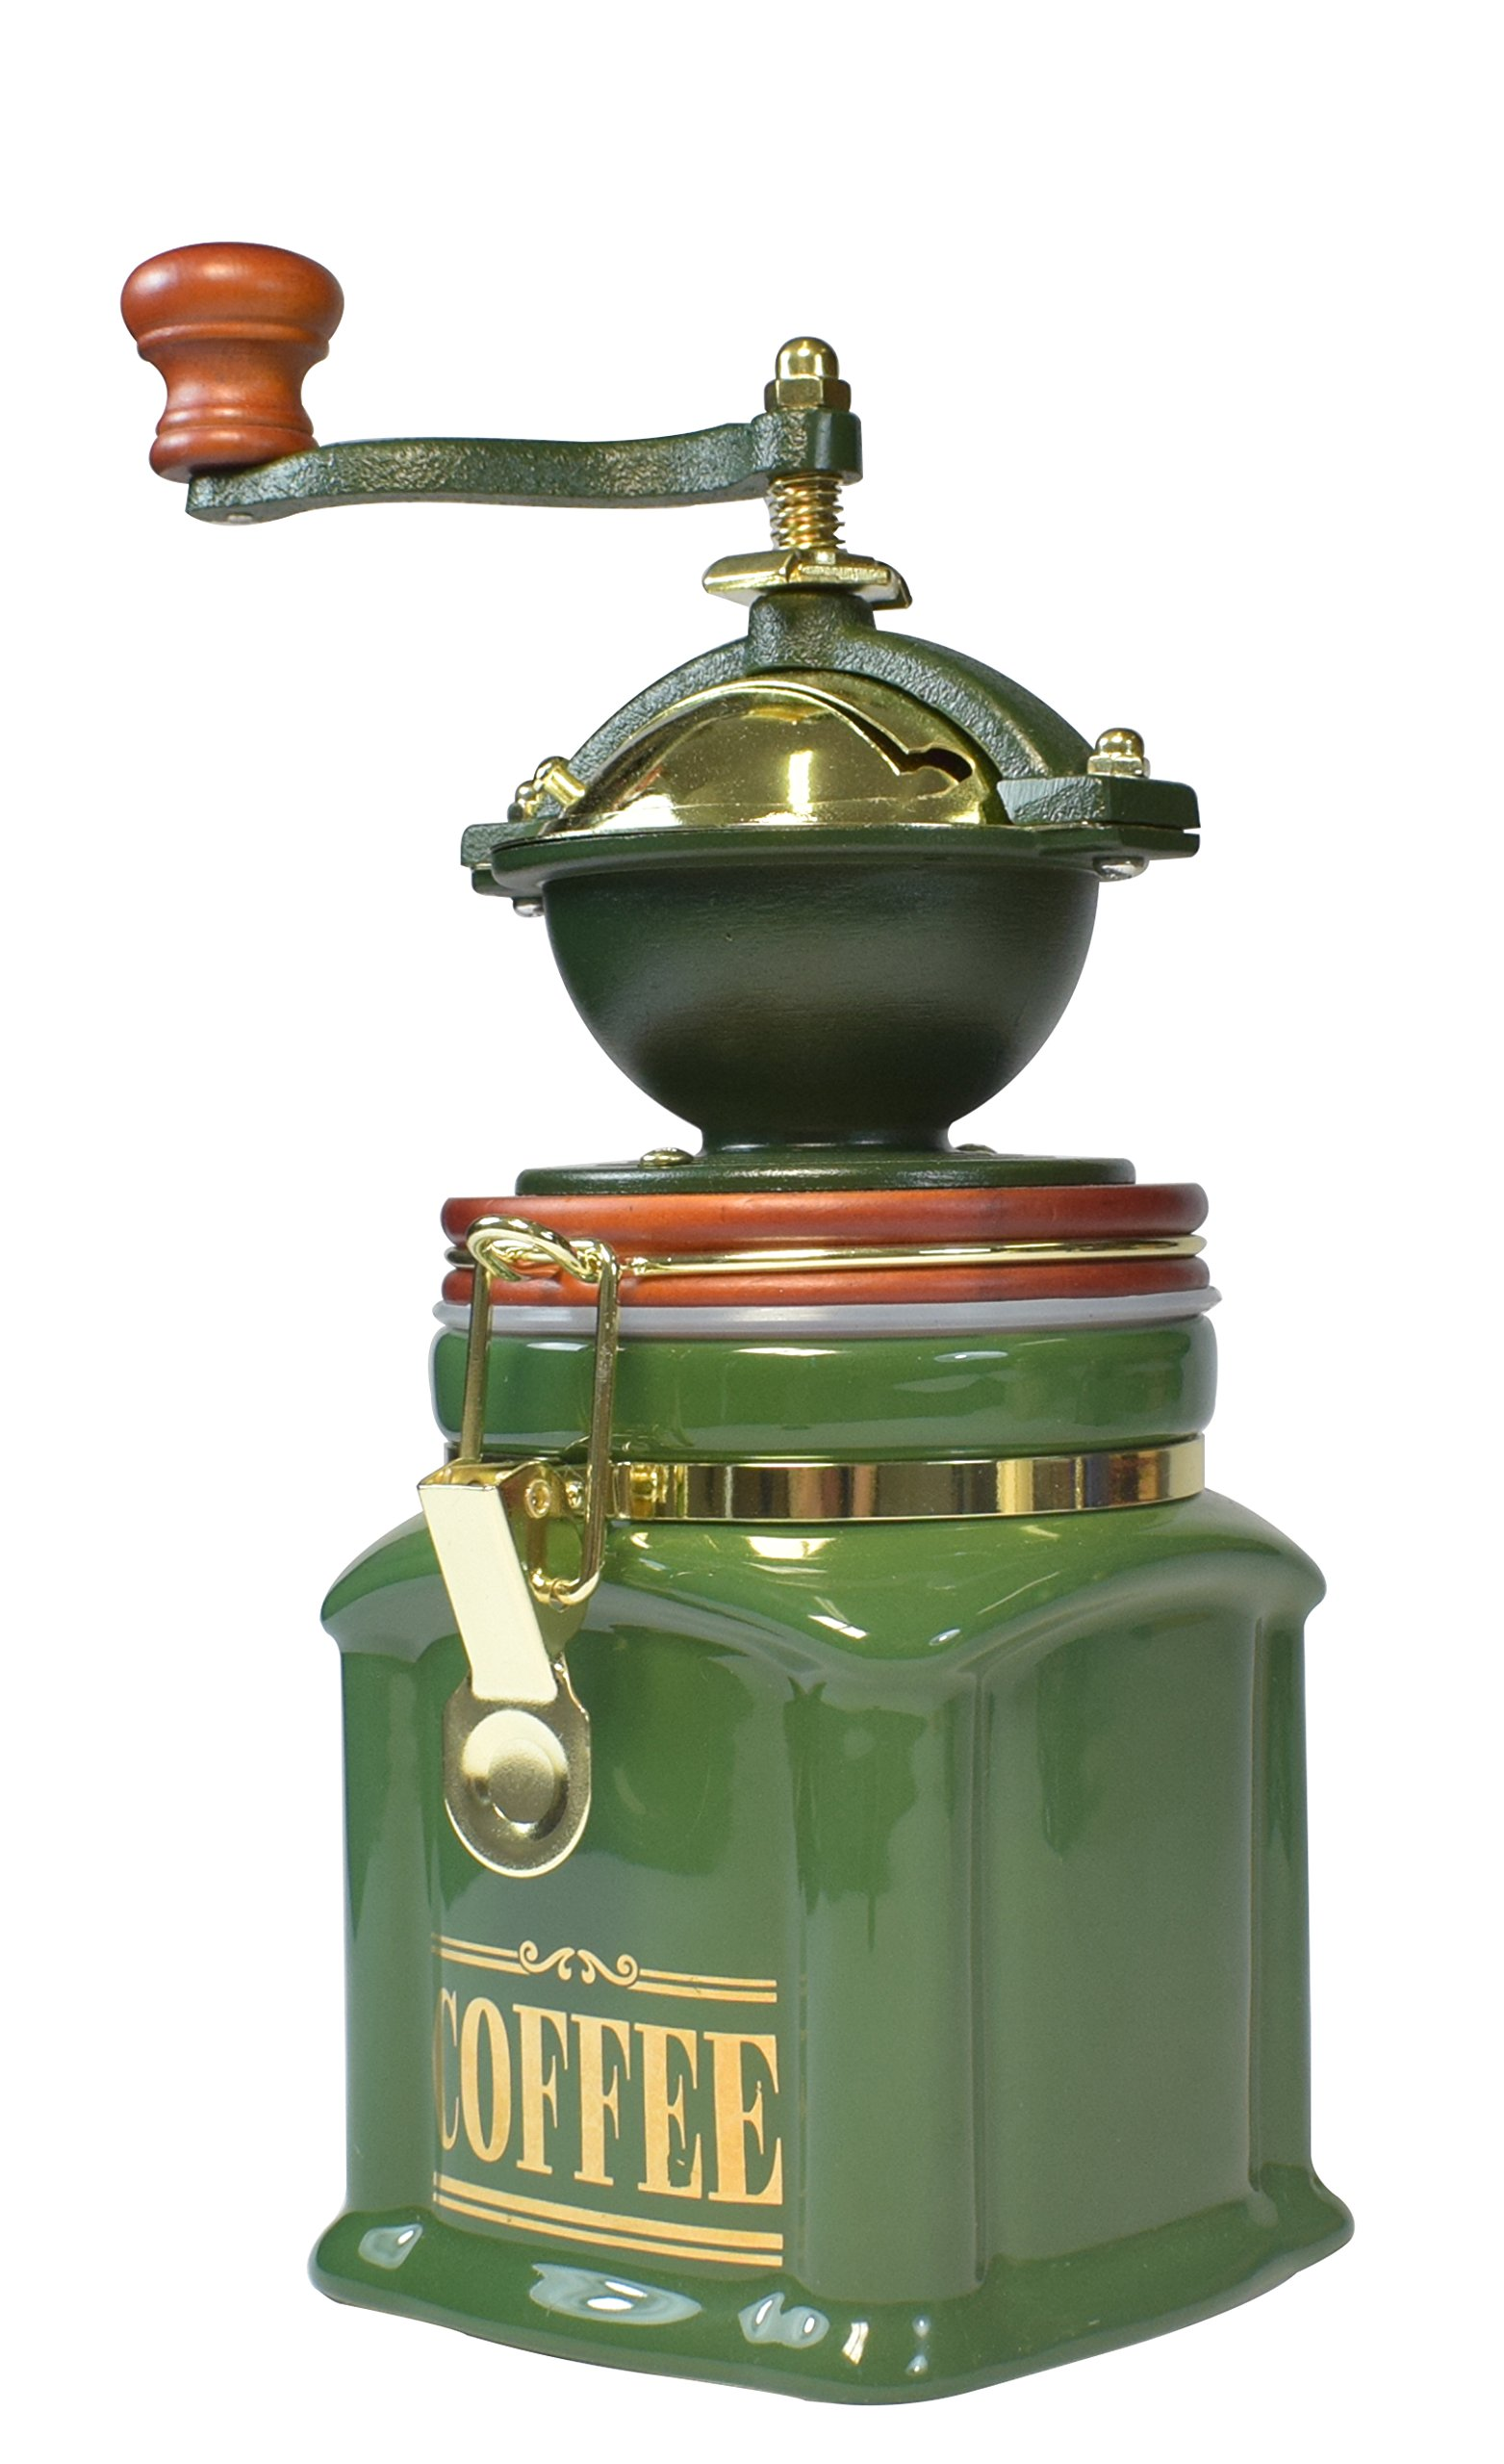 Bisetti 61130 Vivalto Coffee Grinder, Green by bisetti